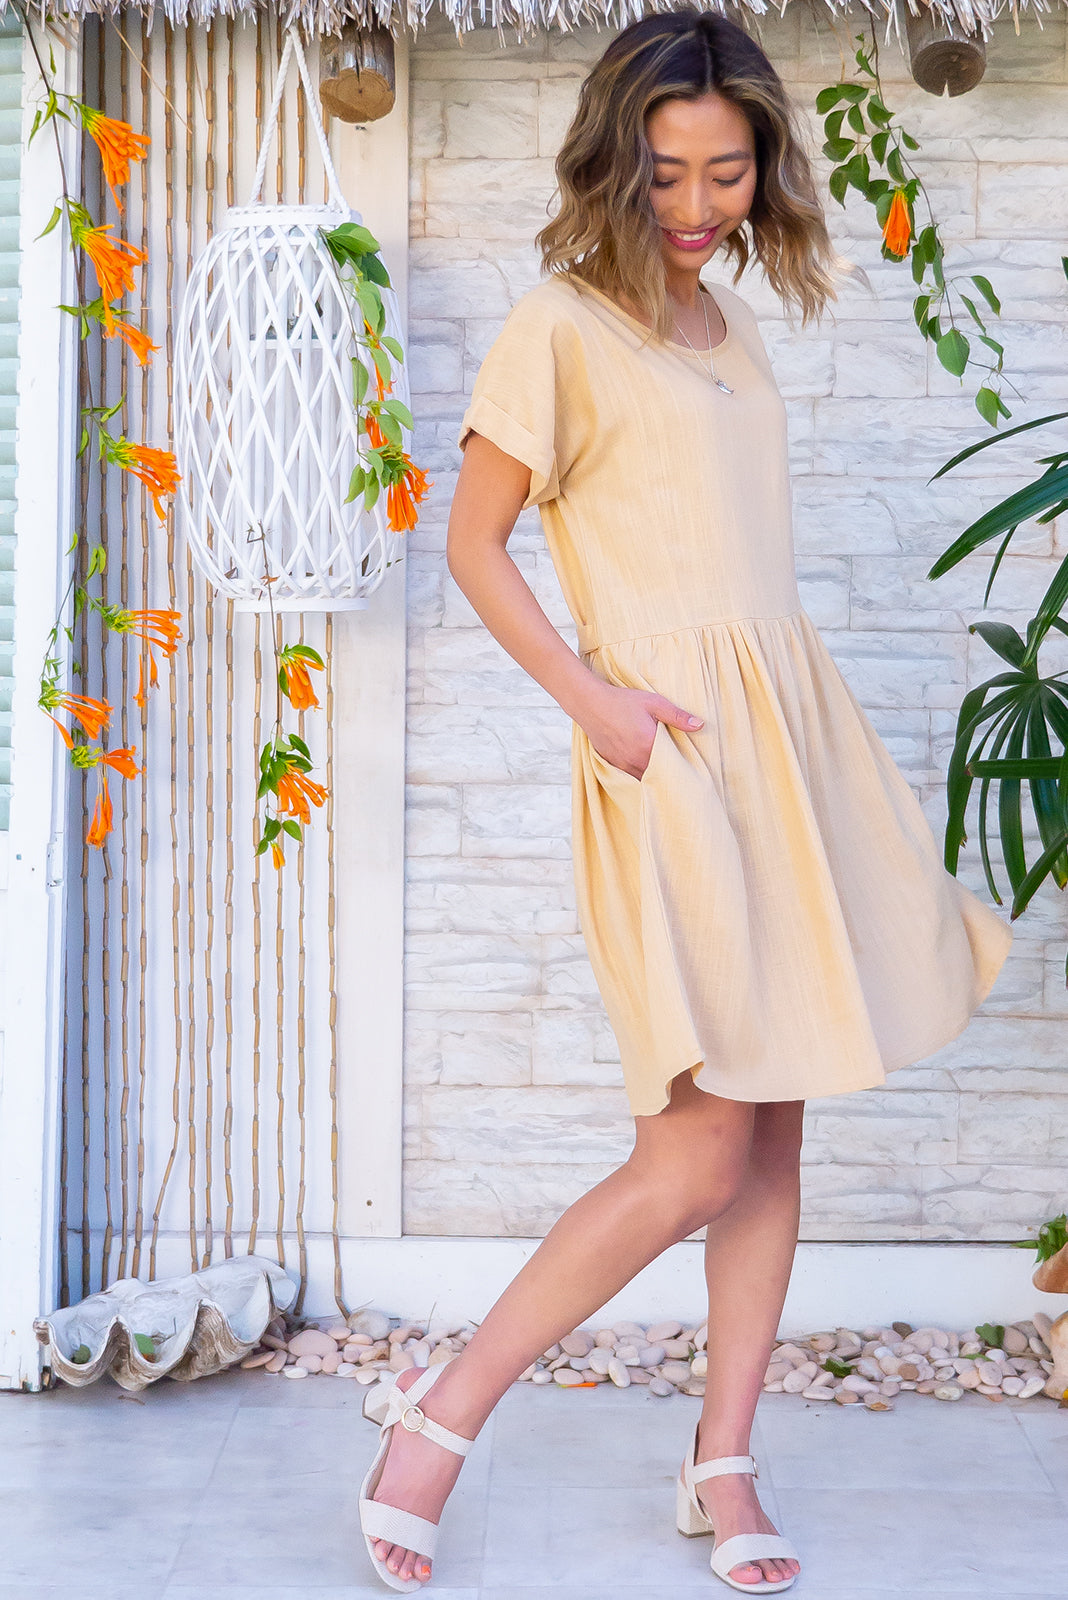 Blue Moon Corn Gold Dress features cuffed sleeves, drop waist, buttons and tabs at waist, side pockets and 30% Linen/ 70% Viscose in latte beige colour.